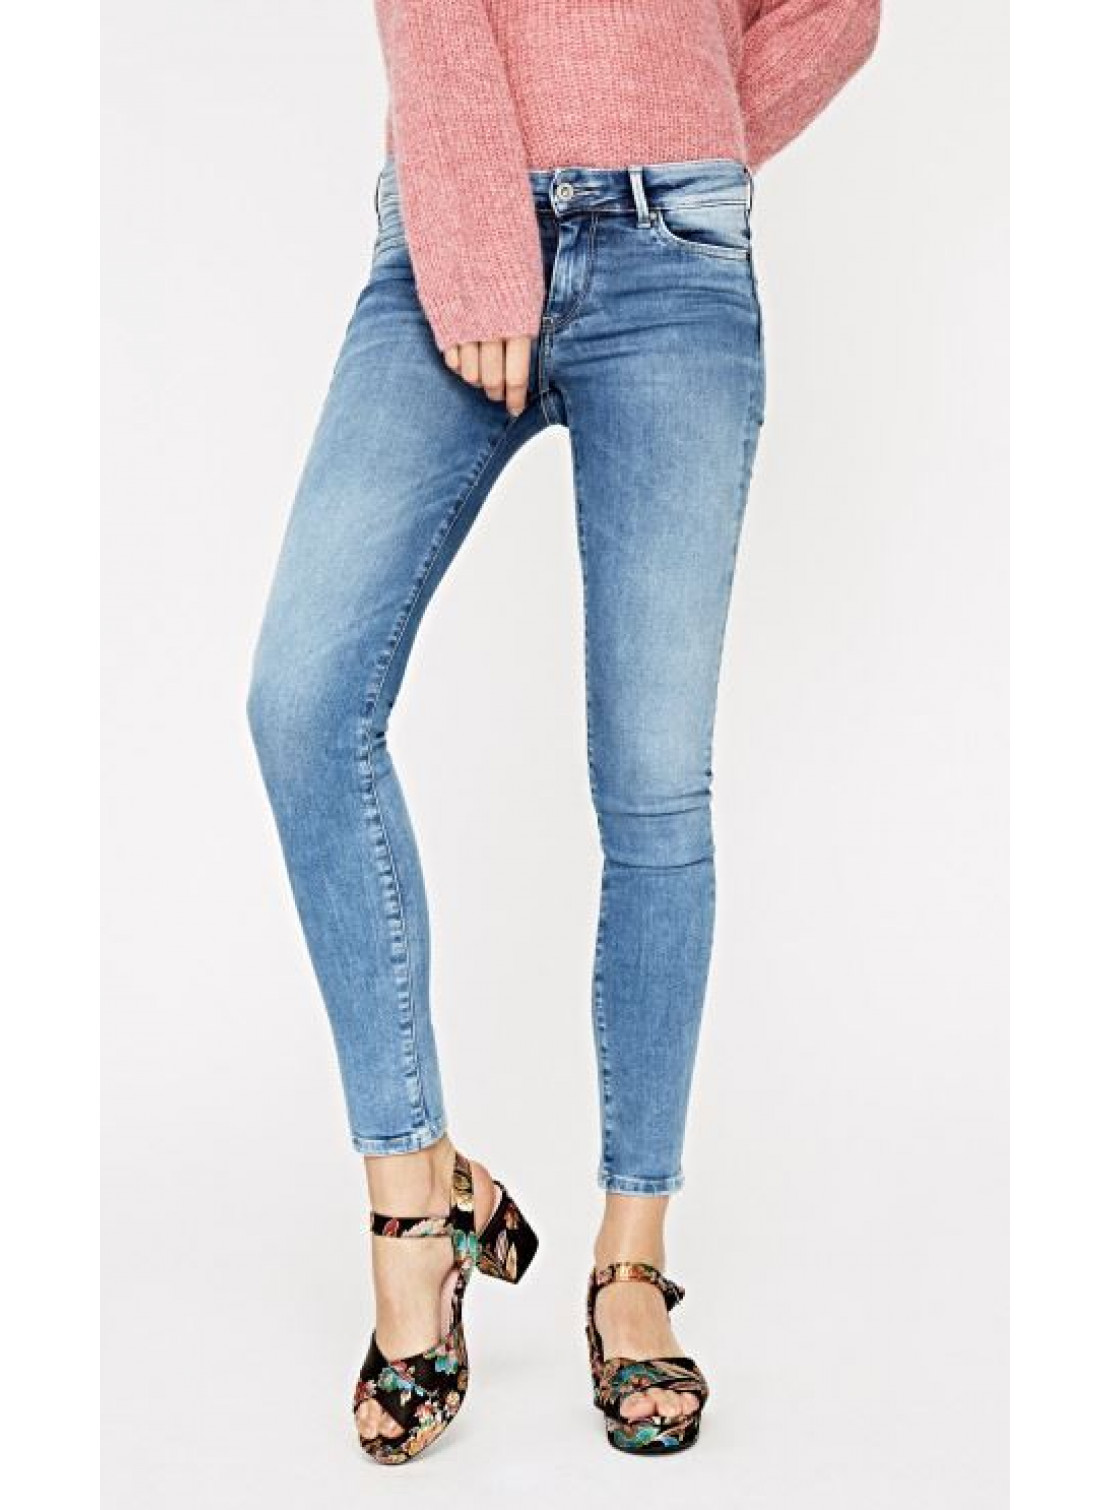 Tejanos Pepe Jeans Pixie Mujer